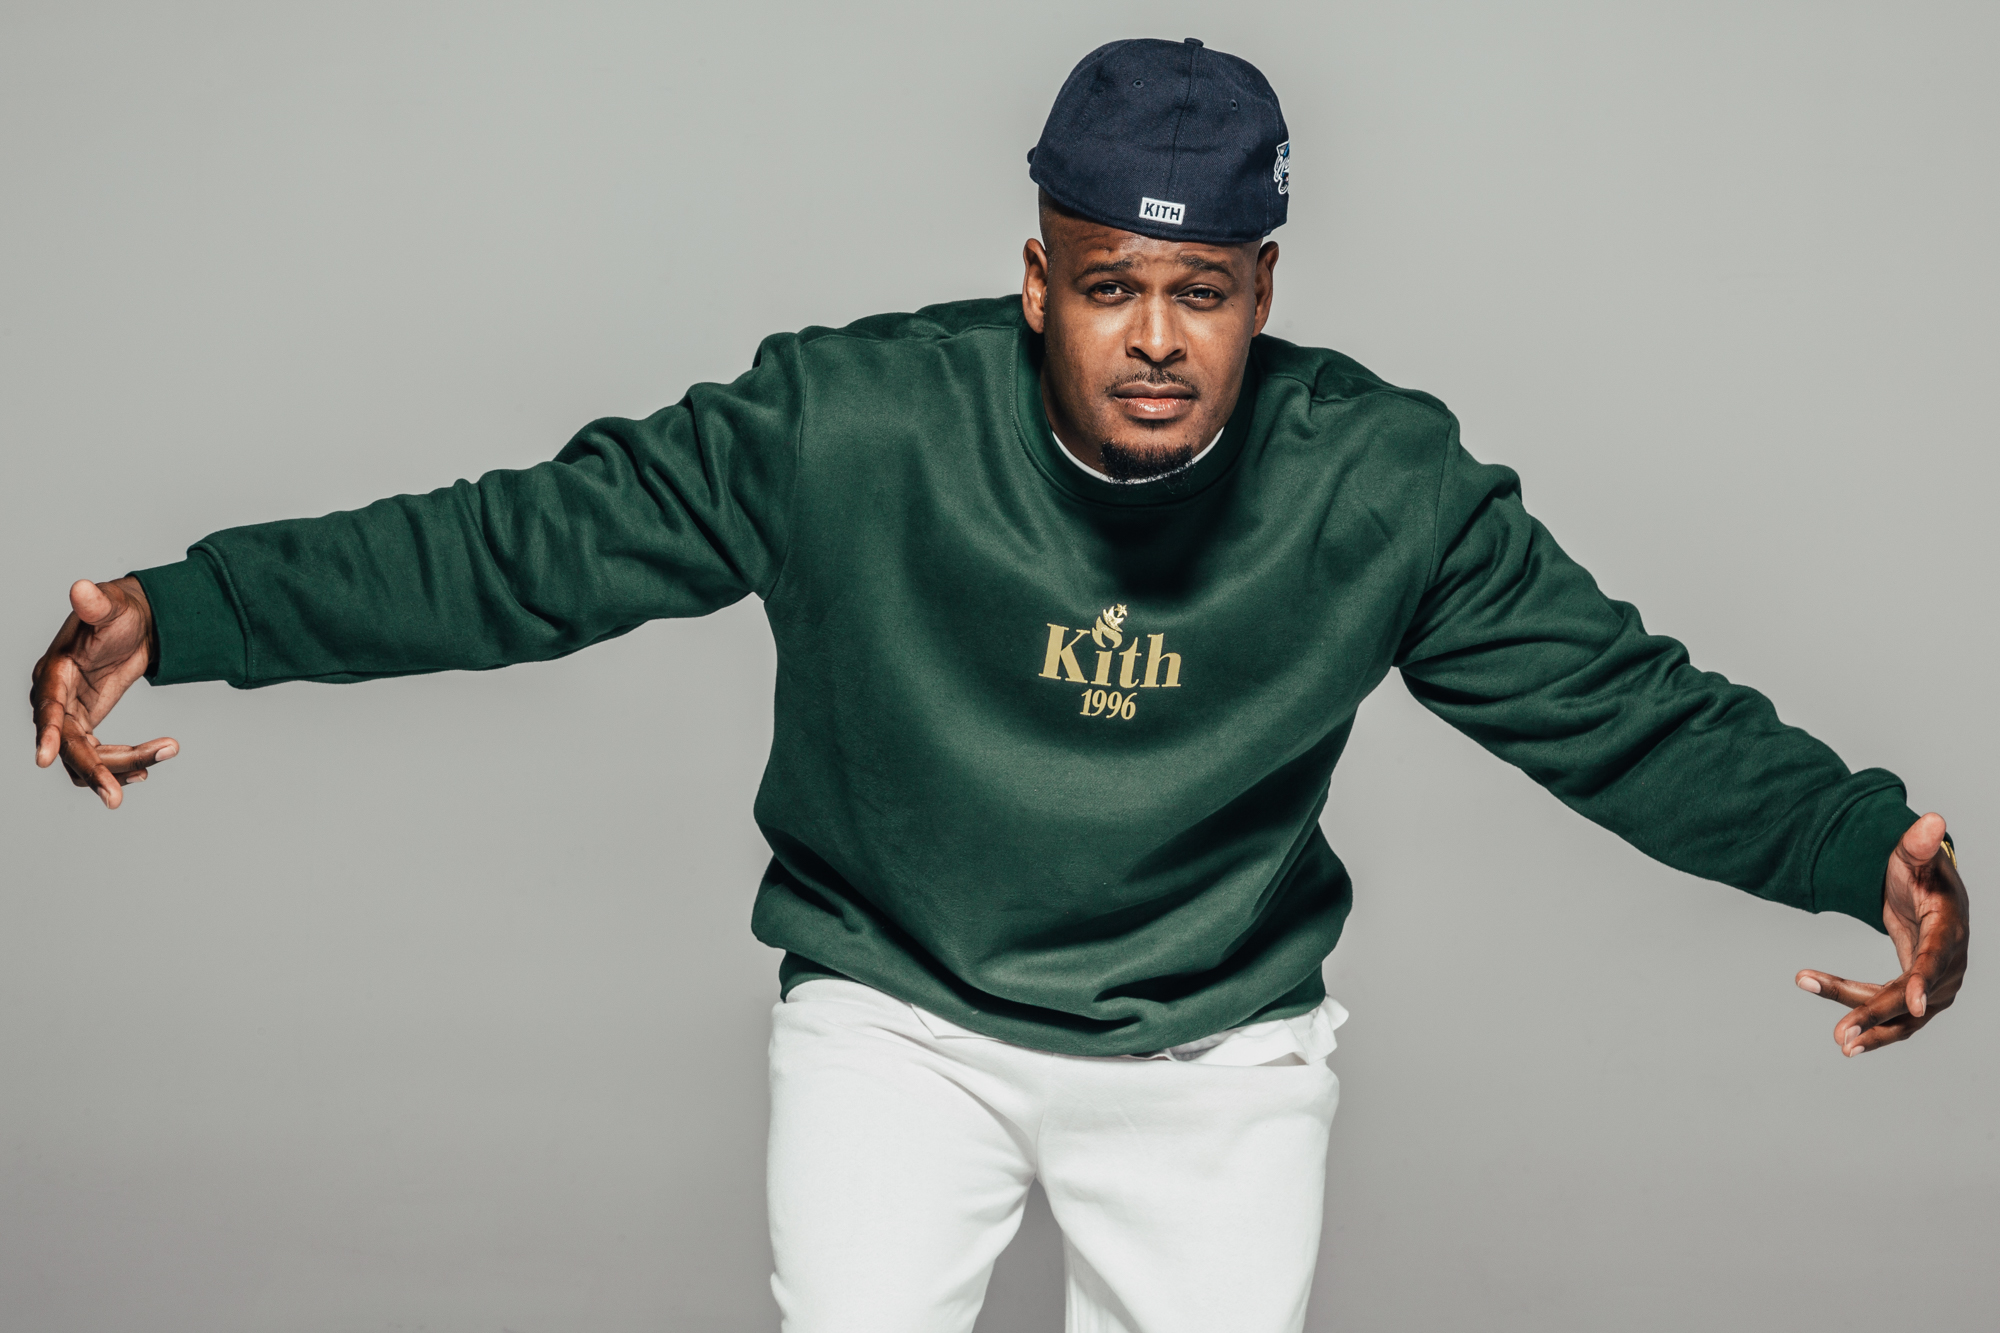 Kith Reveals New 96 Collection With Help From The Lox news